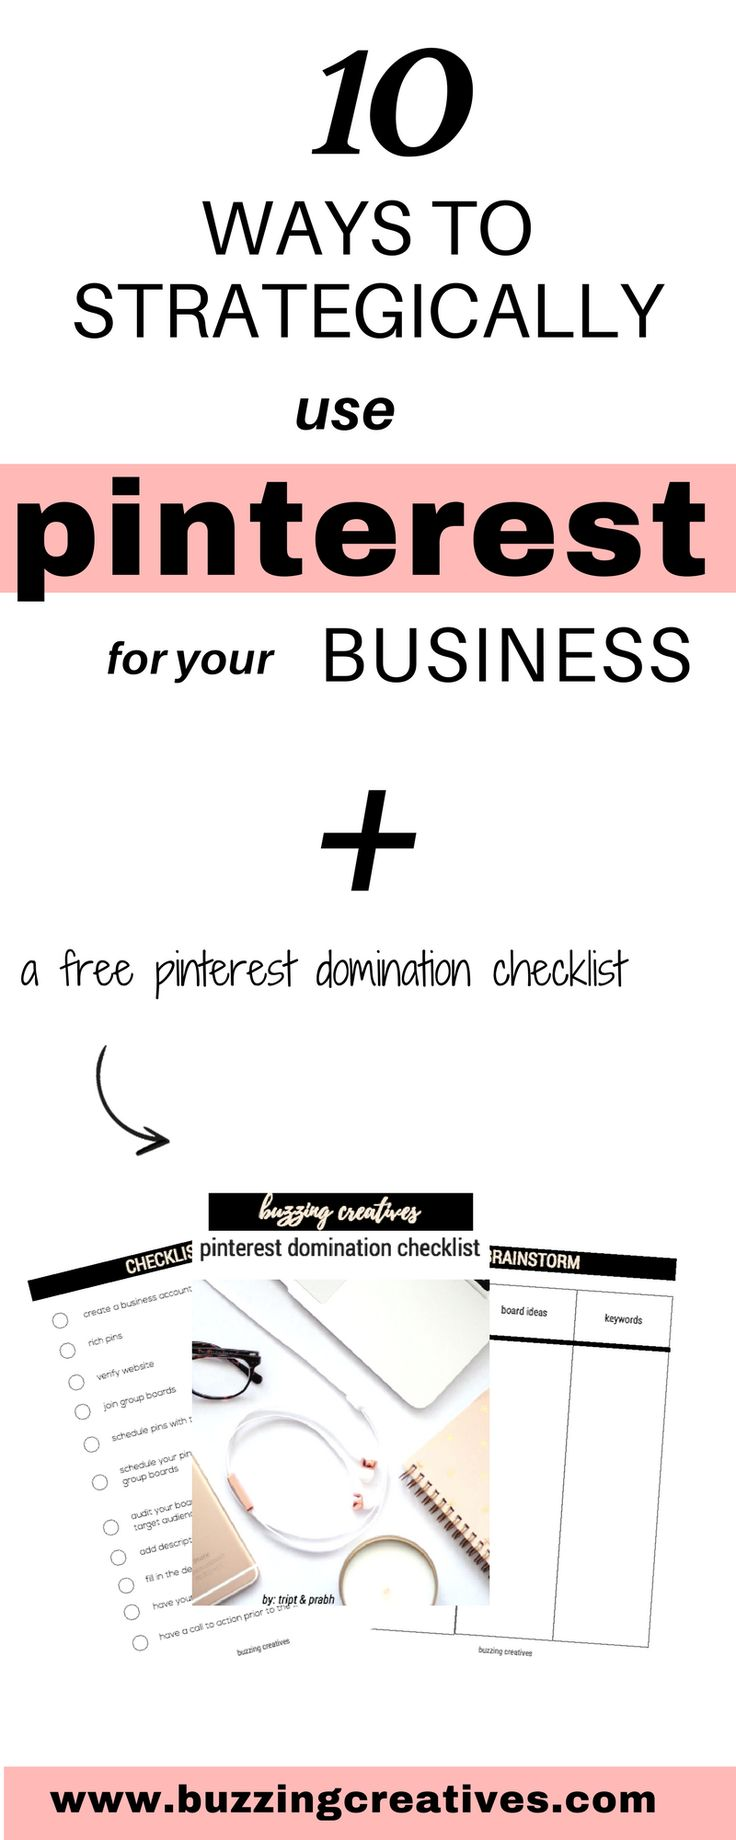 10 ways to strategically use pinterest for your small business or blog Pinterest is such an important tool for every creative entrepreneur. That is why we decided to host a FREE Webinar on 10 ways to strategically use Pinterest for your Business. This Webinar is a great place to start if you have wondered: how can I use Pinterest for my business? many people have made their business thrive because of Pinterest Strategies implemented in their marketing strategy, so can you!